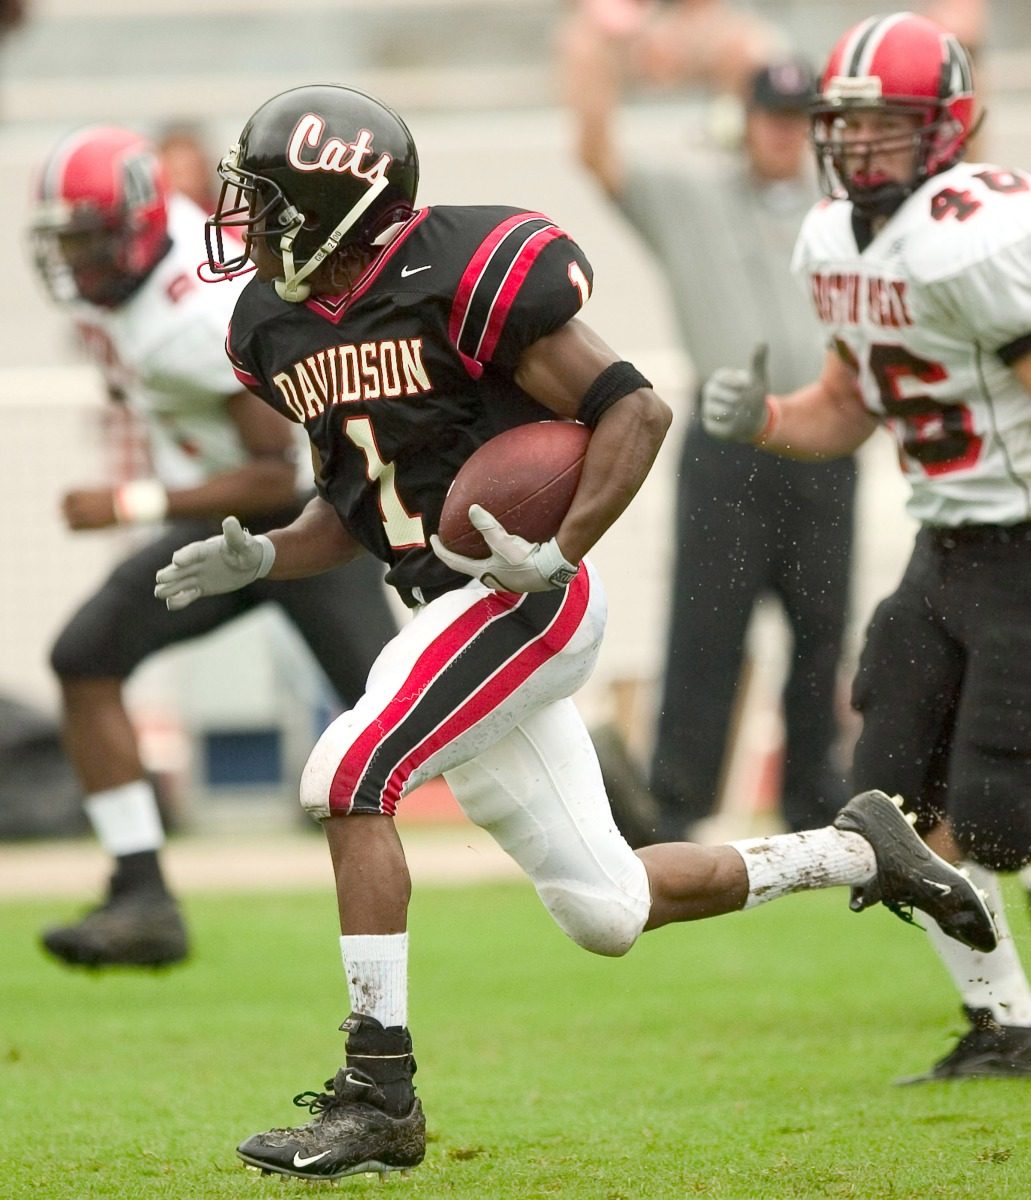 Davidson WR Ryan Hubbard (#1) leaves the Austin Peay defense behind on his way to a 55-yard touchdown during first quarteraction at Stephen B. Smith Field in Davidson, NC, October 8, 2005. (Photo by Brian A.  Westerholt/Getty Images)